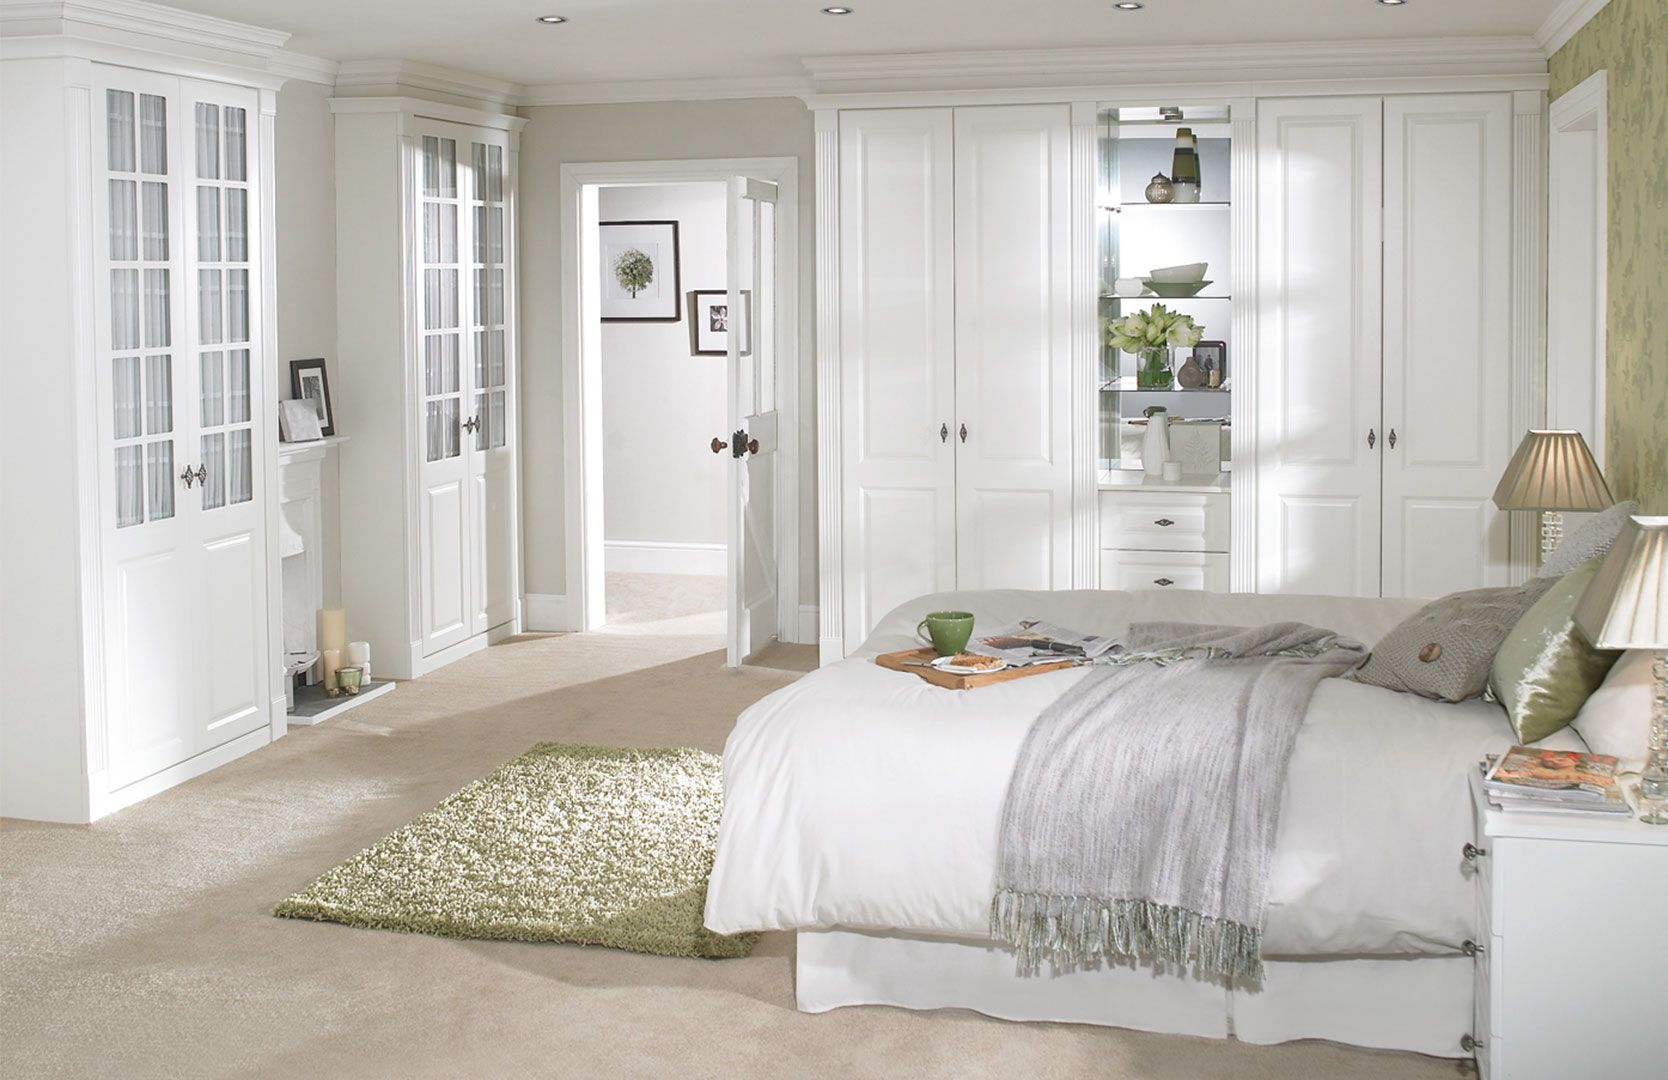 white bedroom design ideas collection for your home | small